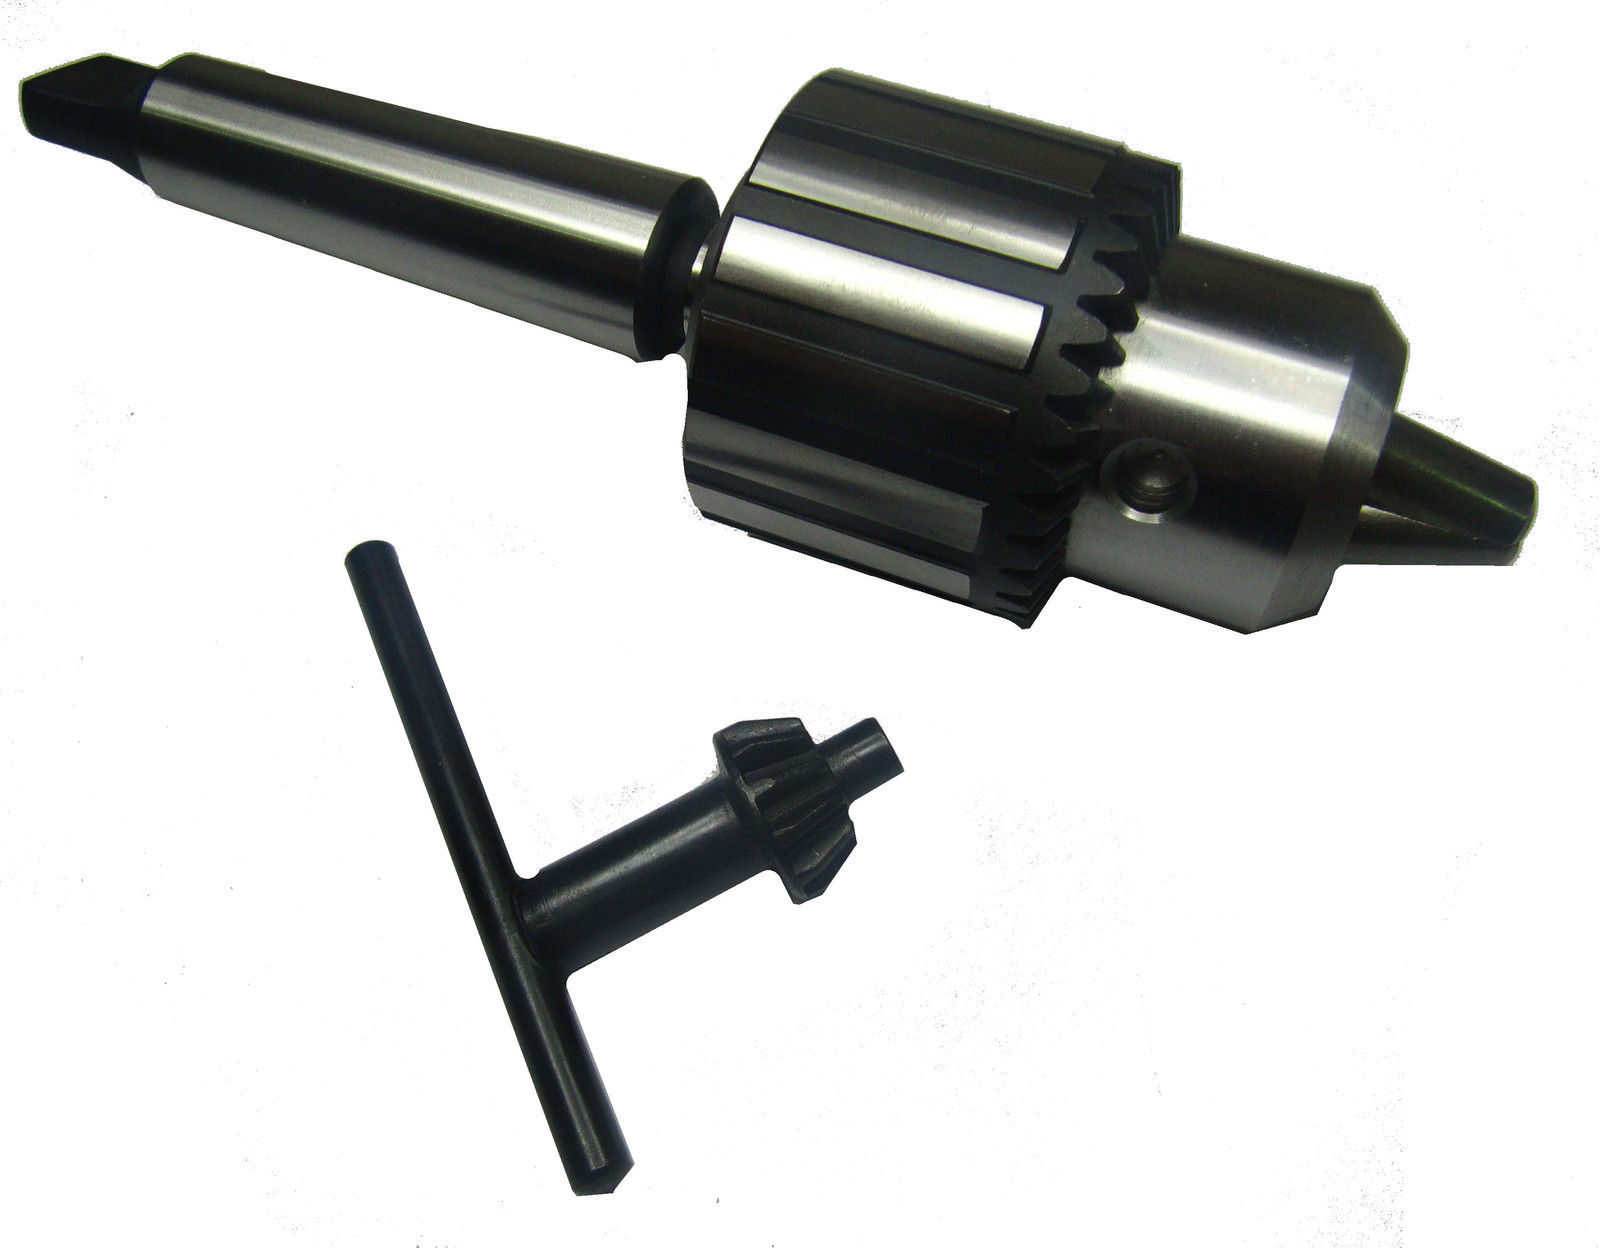 RDGTOOLS 16MM INDEXABLE LATHE TURNING TOOL RIGHT HAND CCMT12 ENGINEERING TOOLS